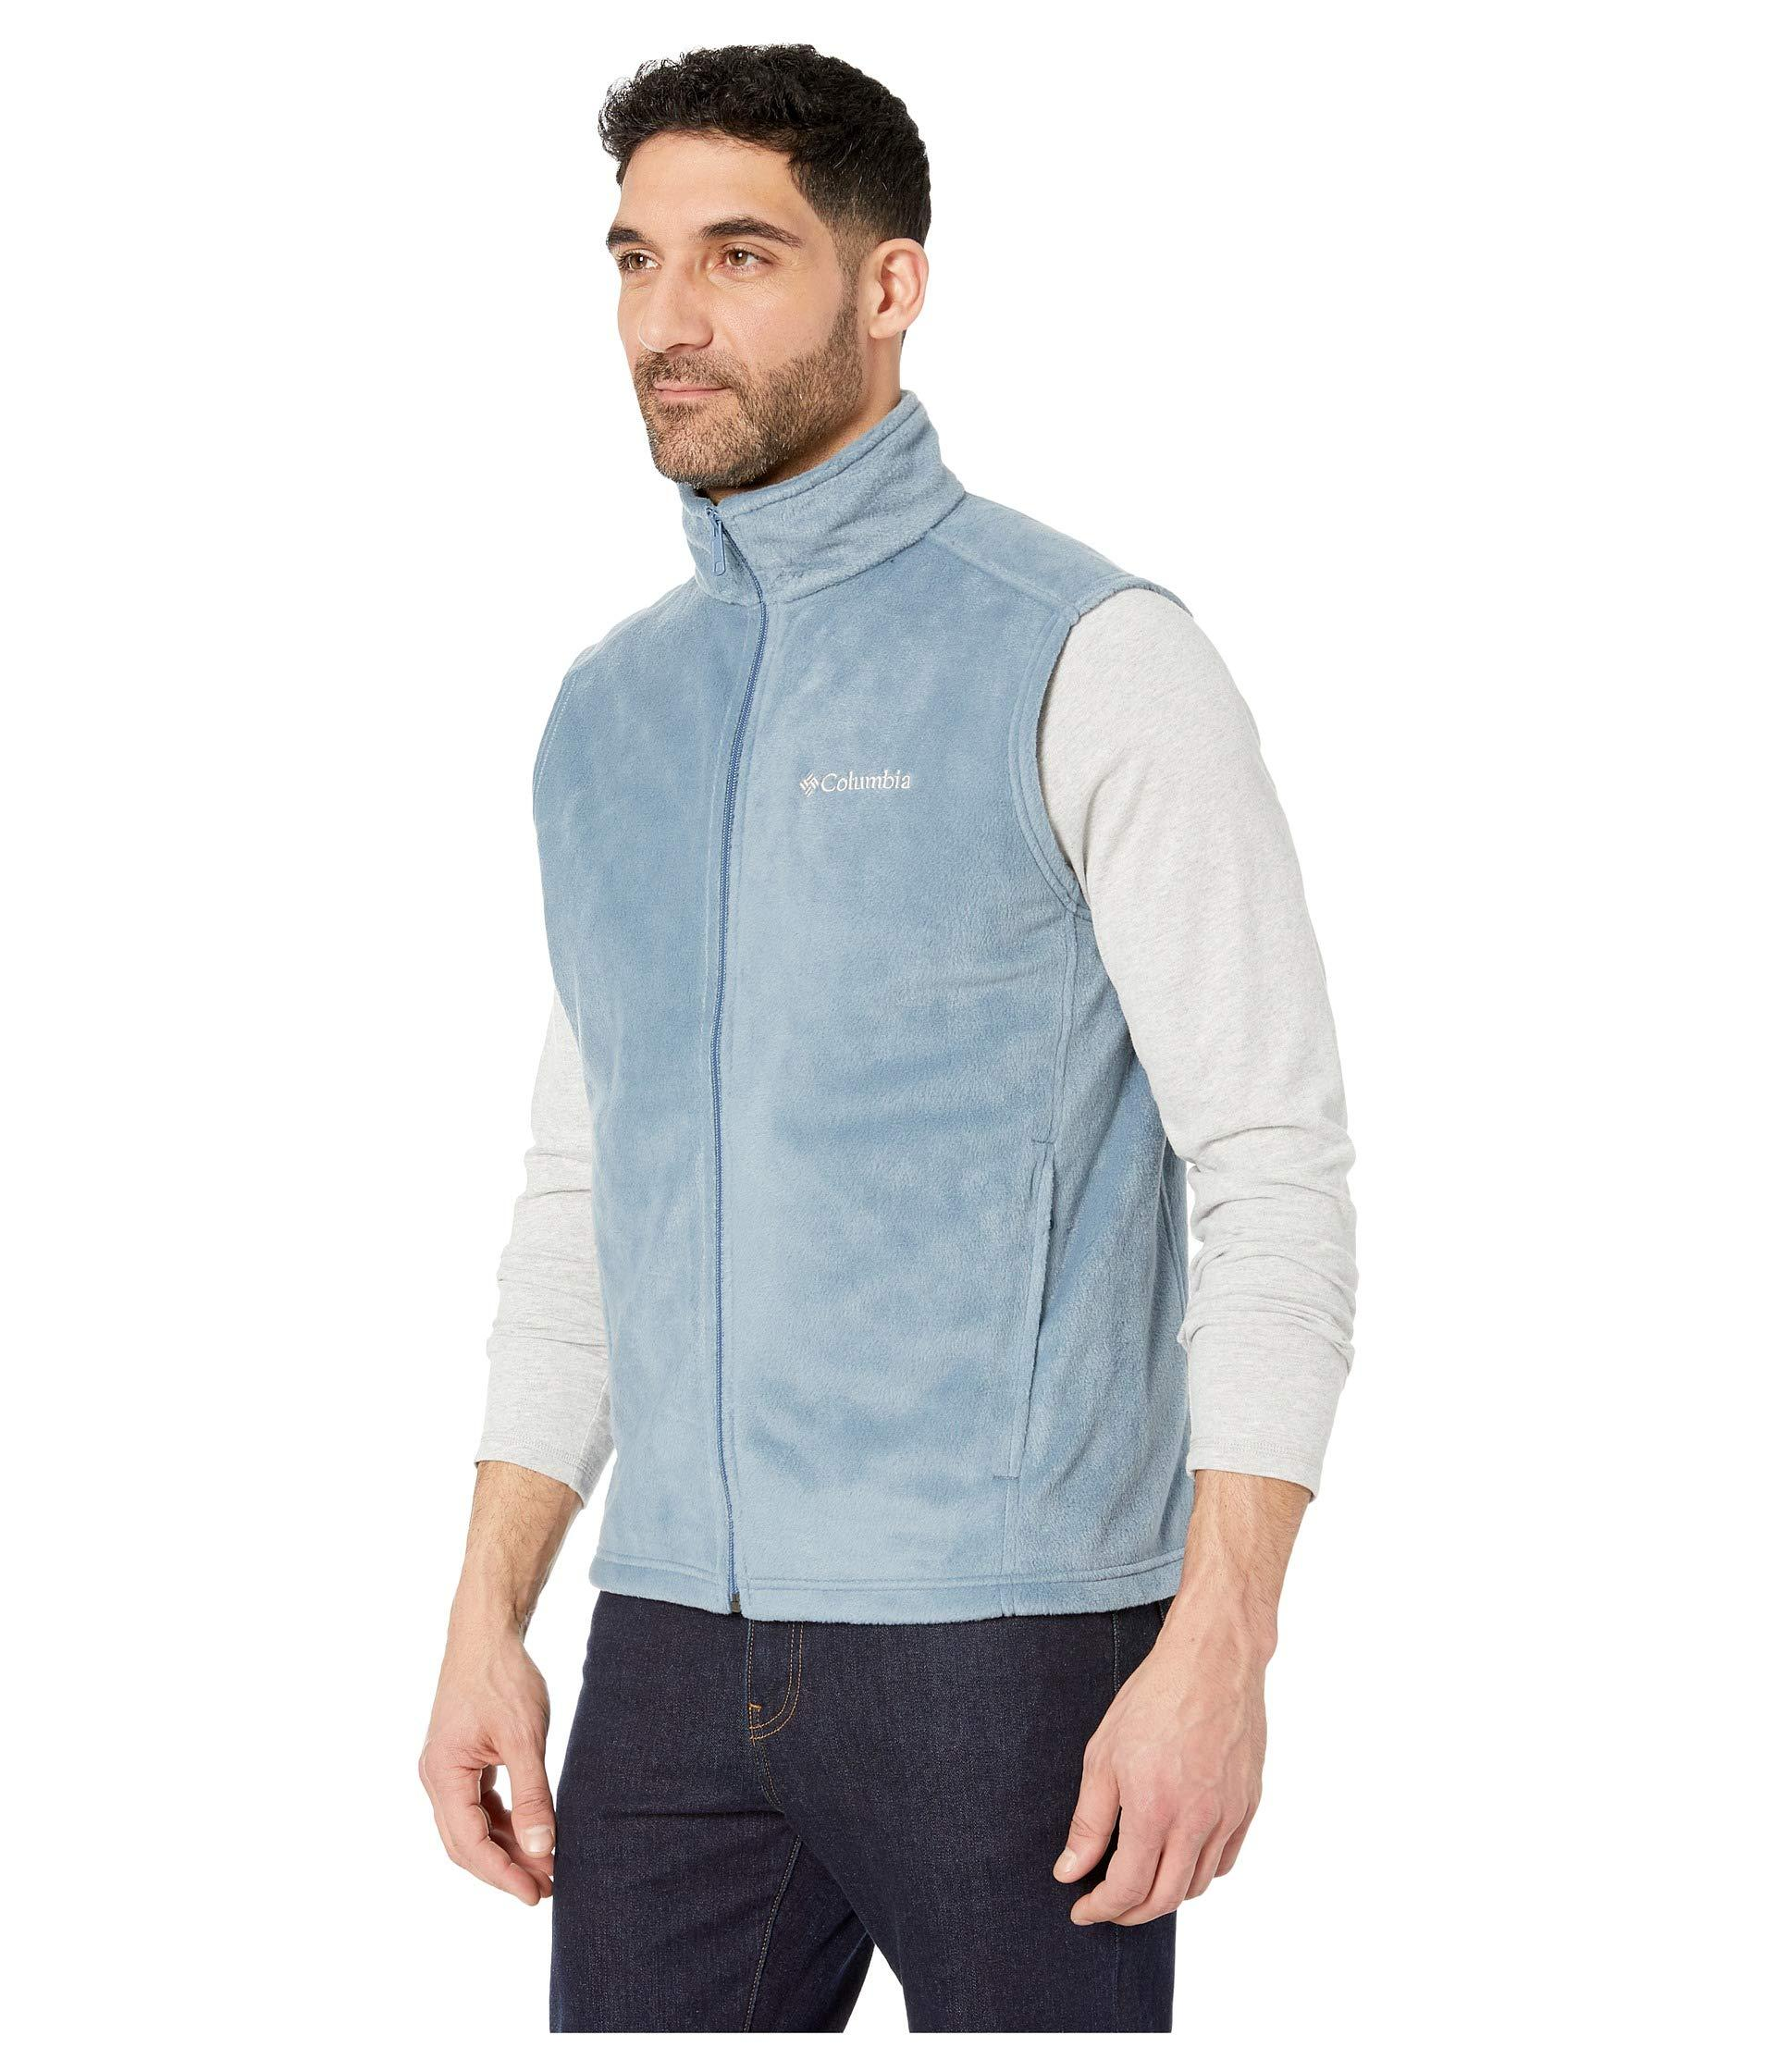 d3390e32b3ab8d Lyst - Columbia Steens Mountaintm Vest (stone delta) Men s Vest in Blue for  Men